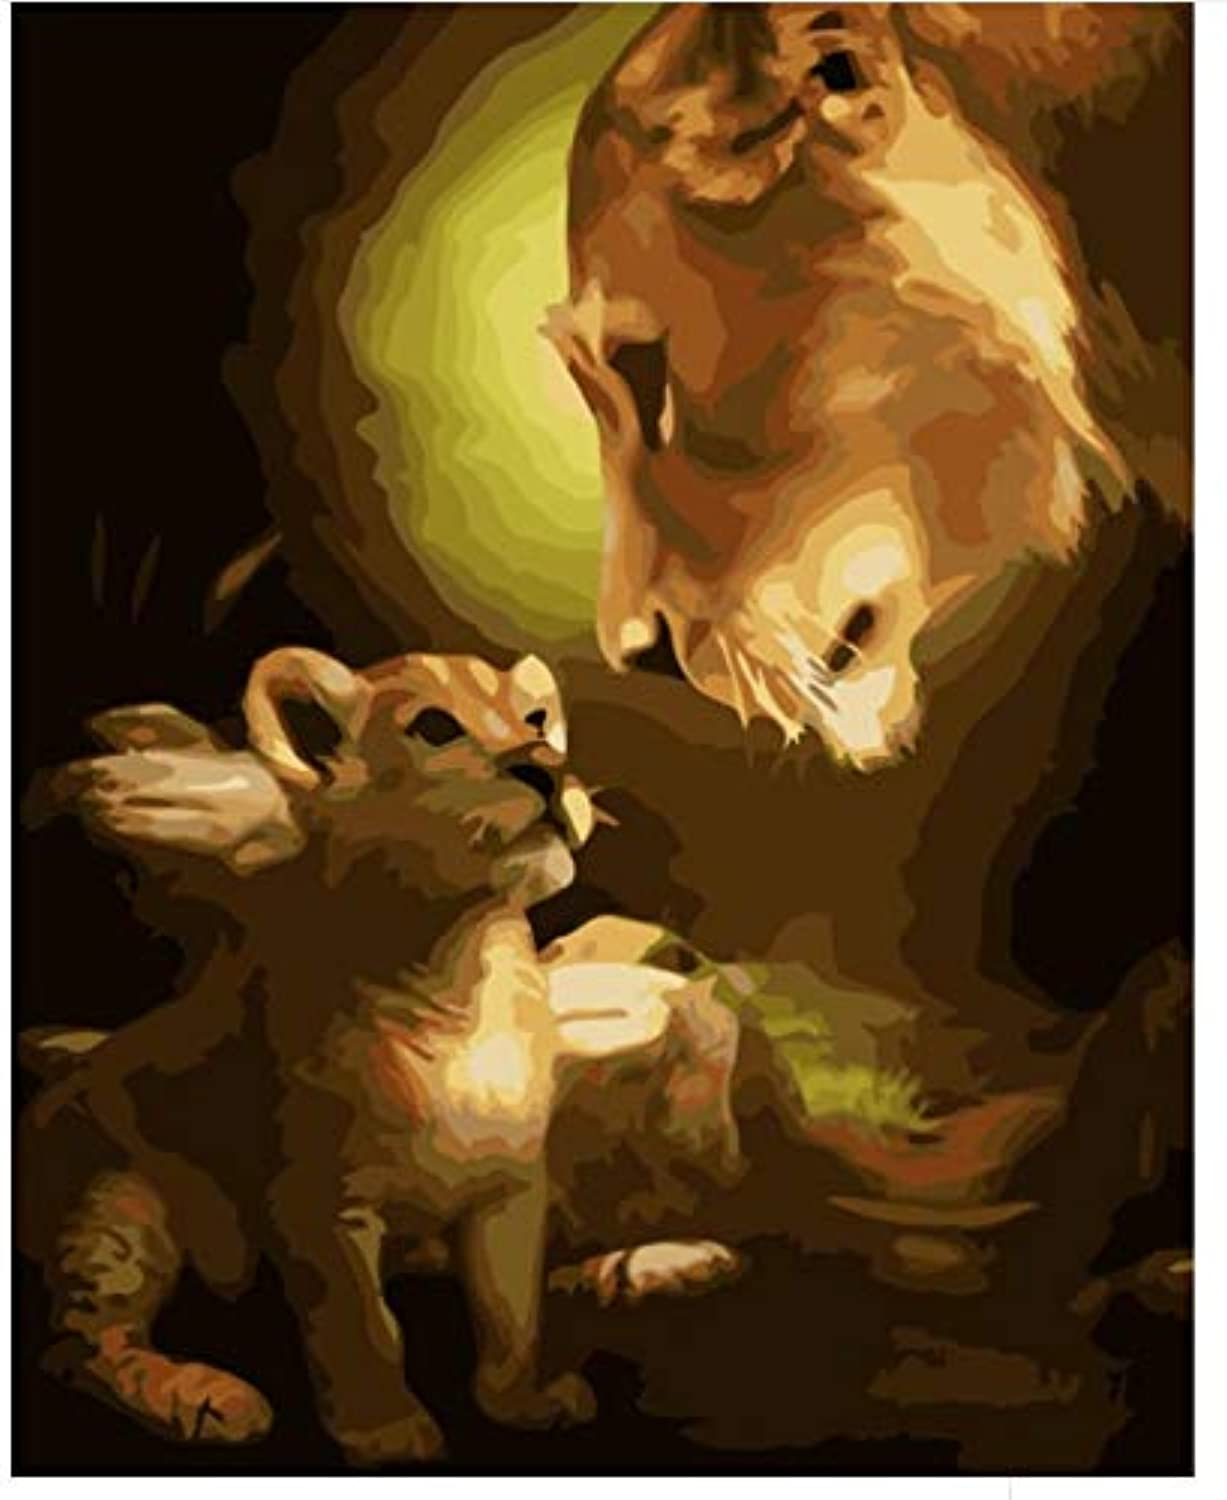 Superlucky Abstract Lion Pictures Painting by Numbers DIY Digital Canvas Oil Painting Home Decor for Living Room Wall Art 40x50cm Mit Rahmen B07J6QRLDV | Neueste Technologie